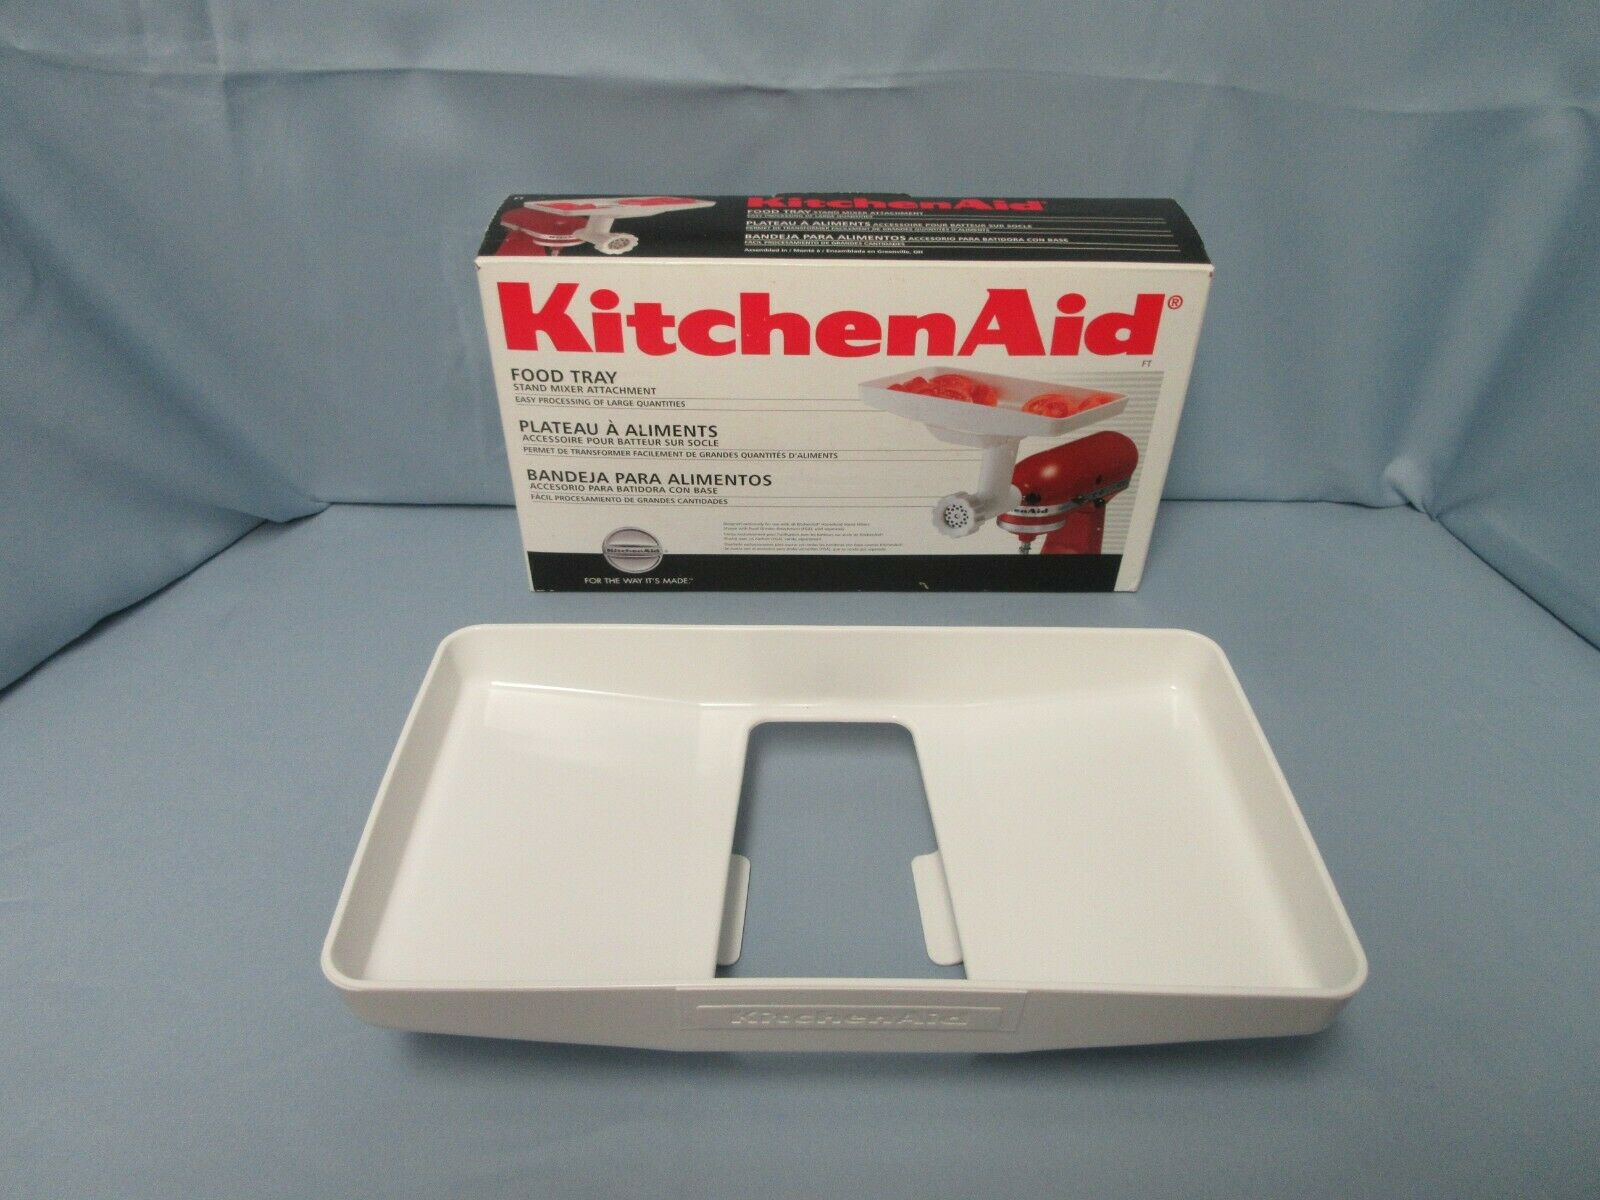 KitchenAid Stand Mixer Food Tray Attachment - Fits Food Grinder - $22.50